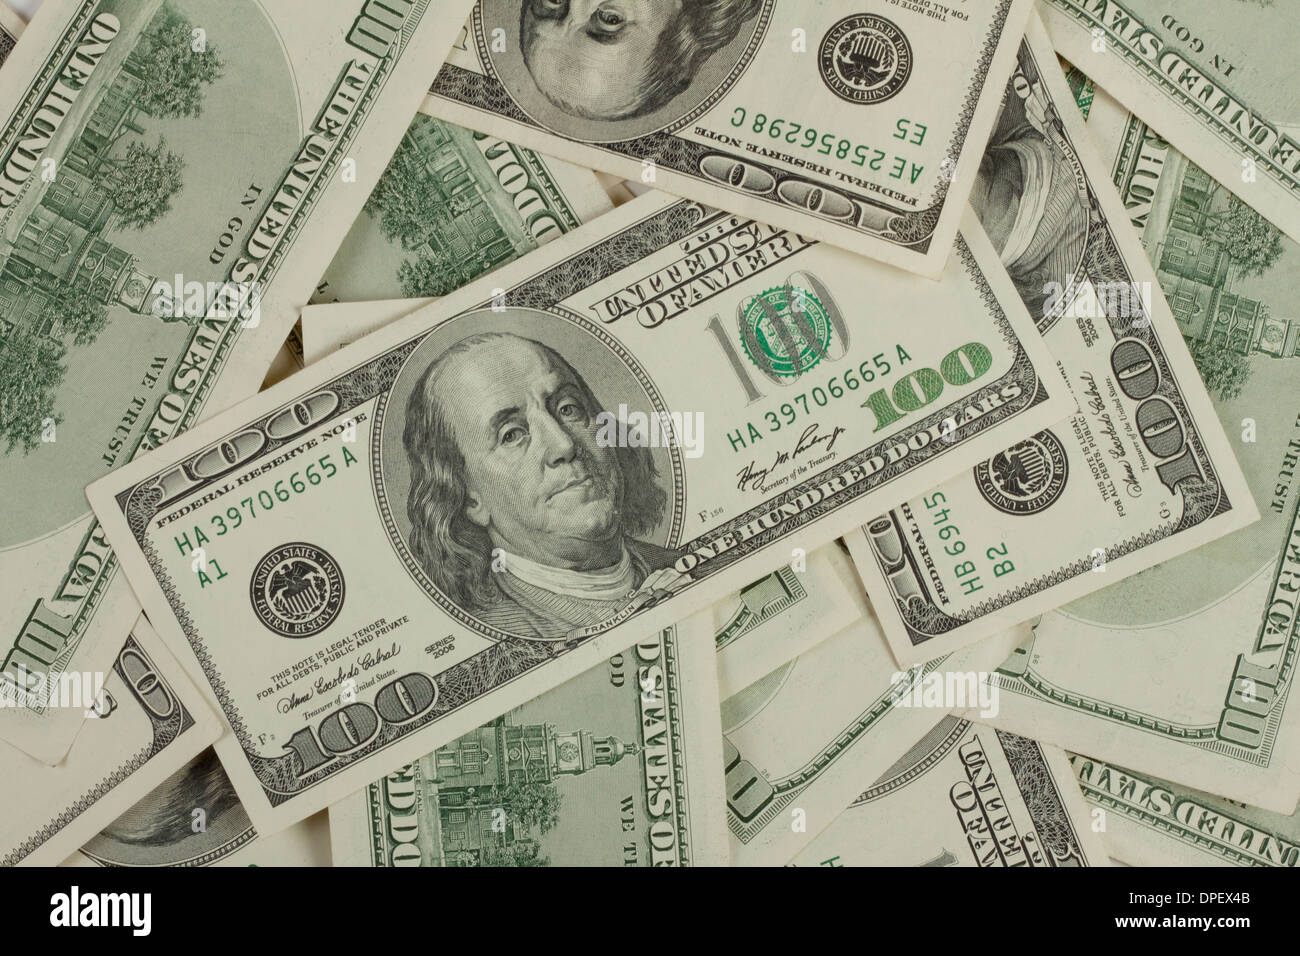 Background texture of the green hundred-dollar bills - Stock Image